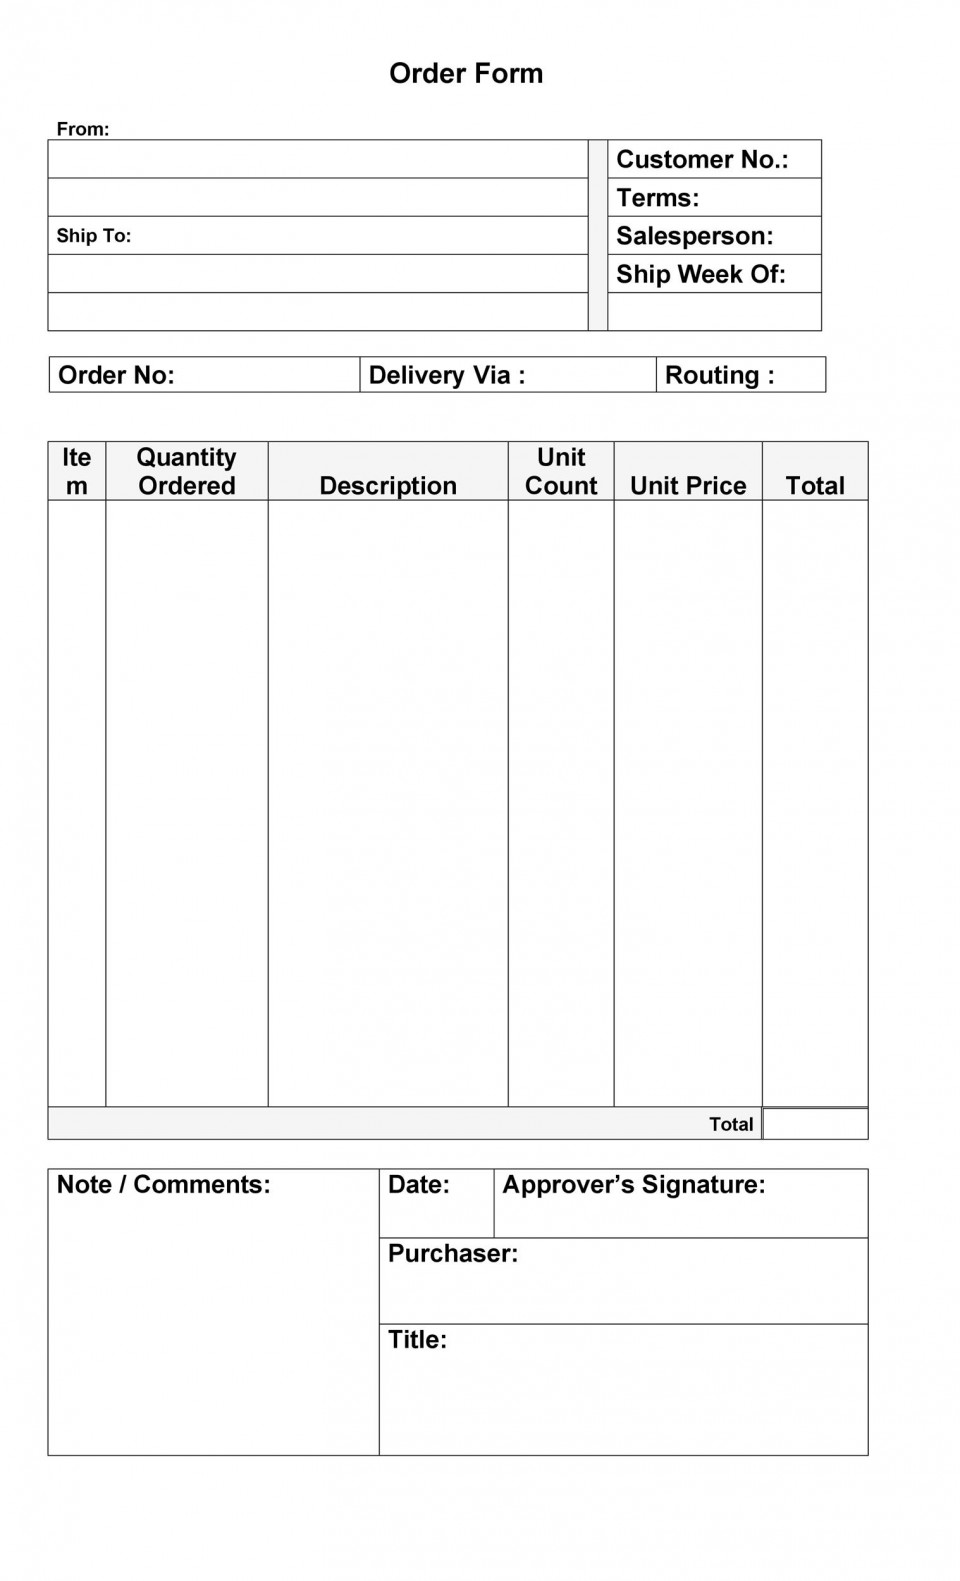 005 Marvelou Work Order Form Template Highest Clarity  Request Excel Advertising Company Free960